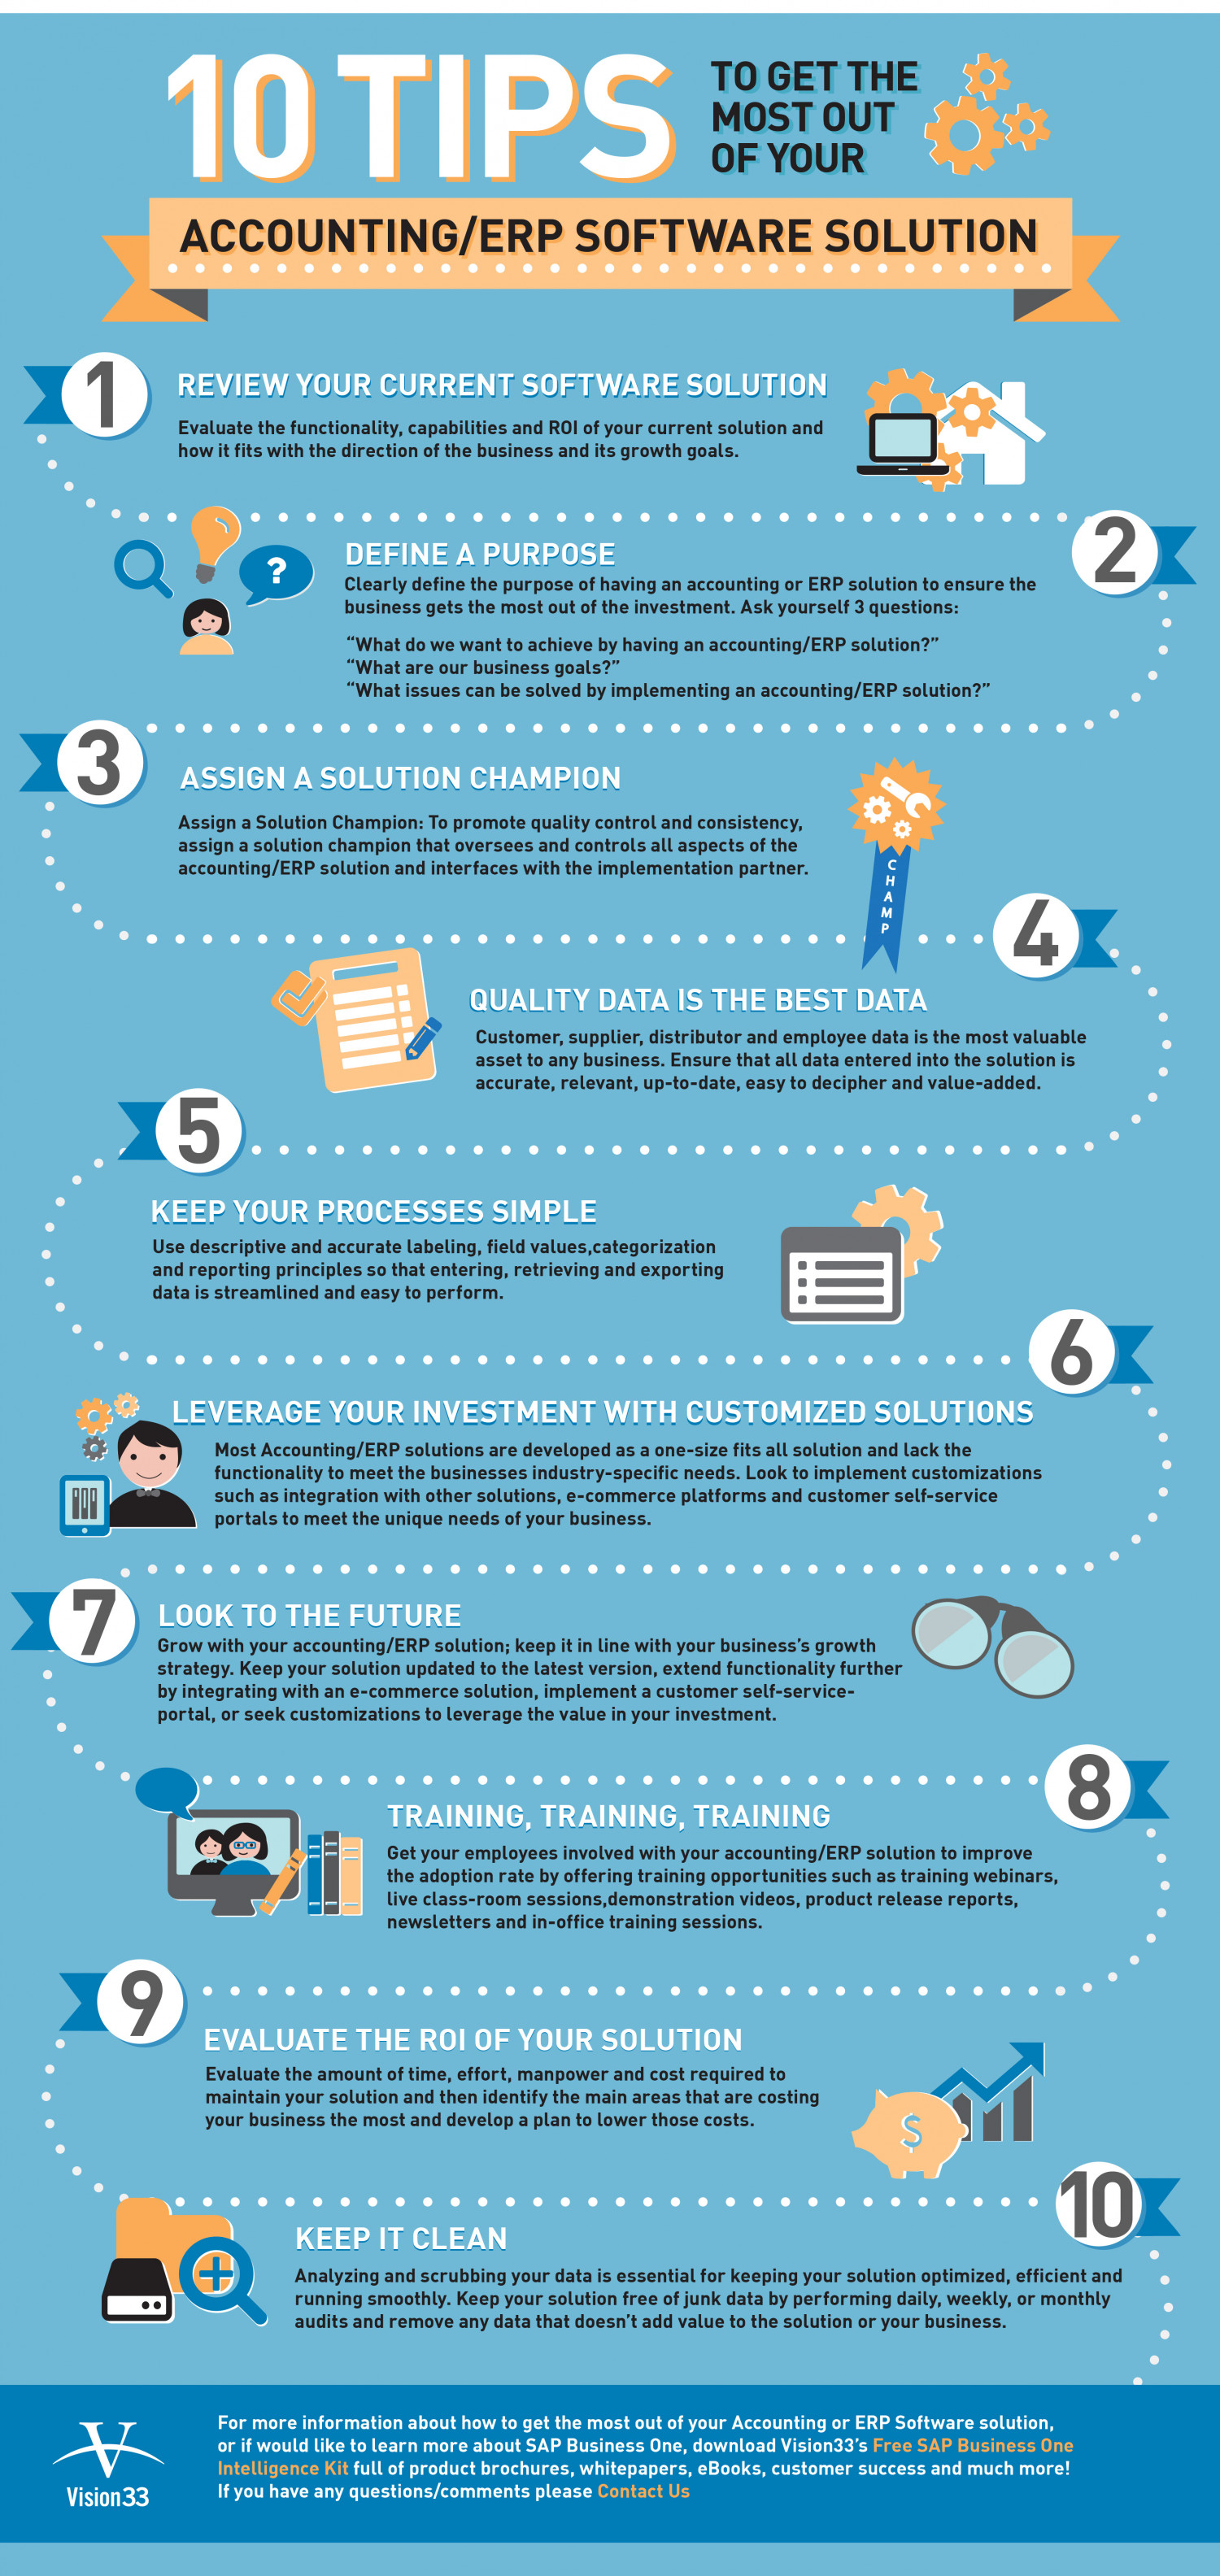 10 Tips to Get the Most Out of Your Accounting/ERP Software Solution Infographic